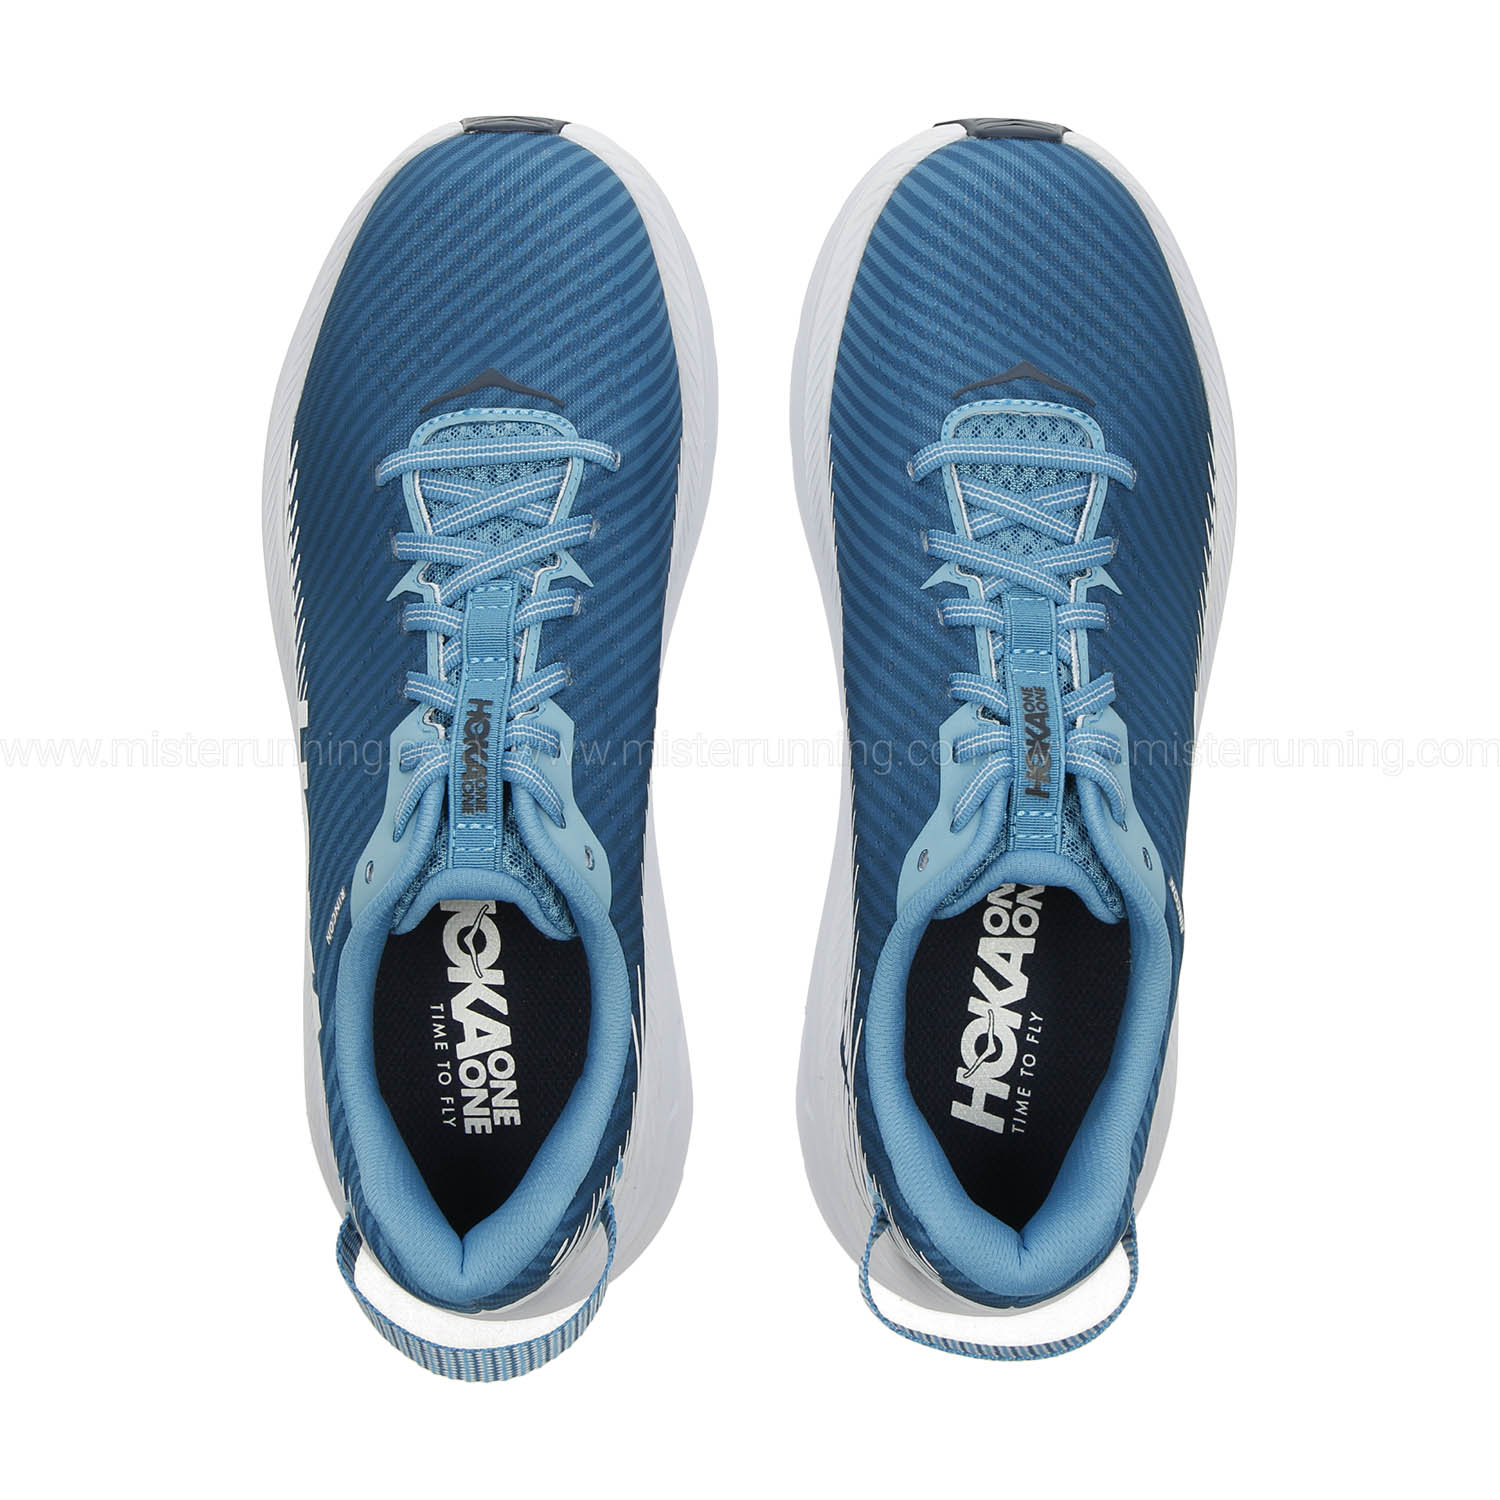 Hoka One One Rincon 2 - Blue Moon/White